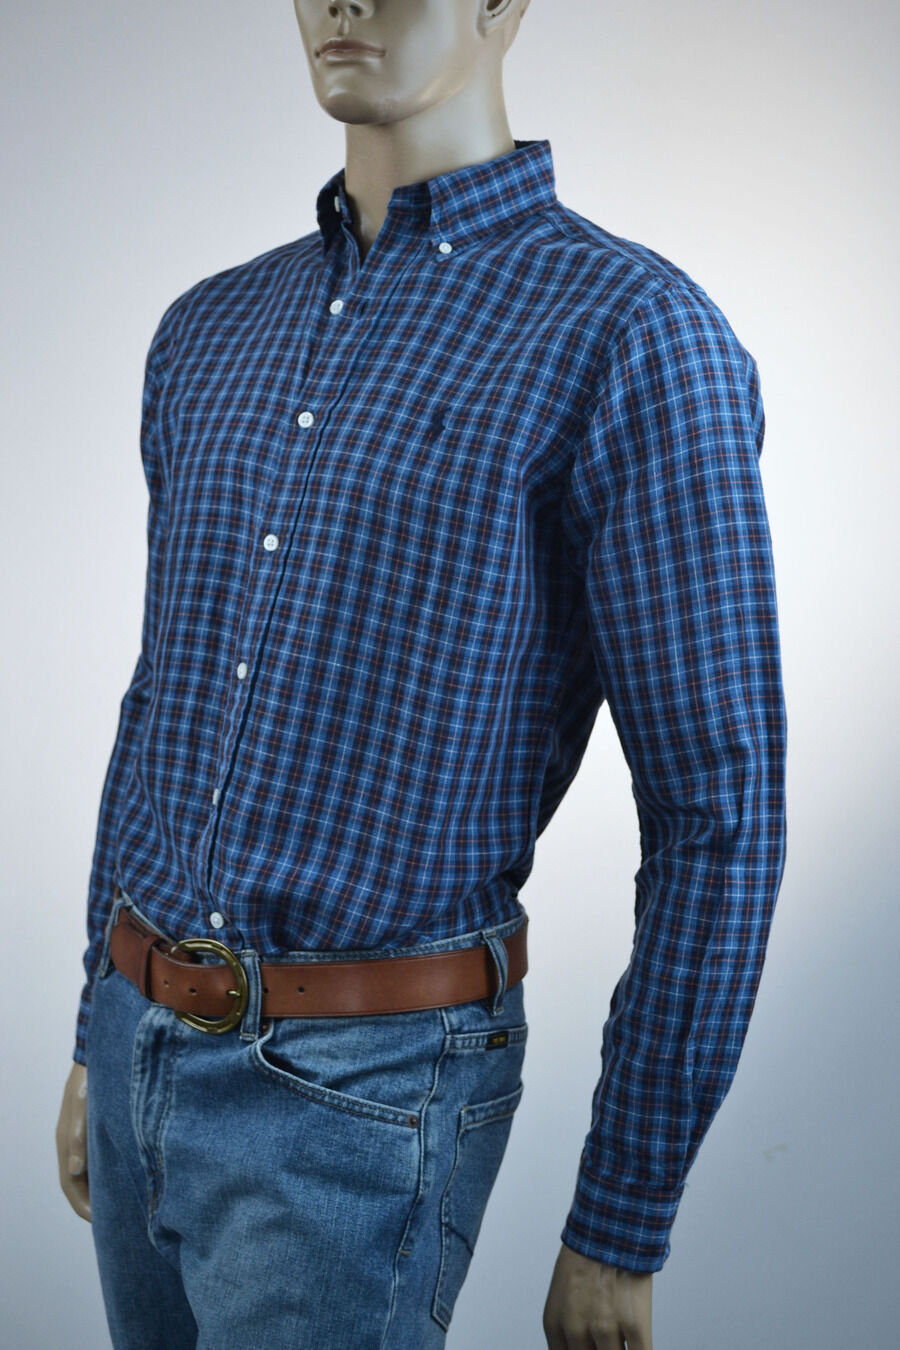 Ralph Lauren Classic Fit bluee & Red Linen Plaid Long Sleeve Shirt bluee Pony-NWT